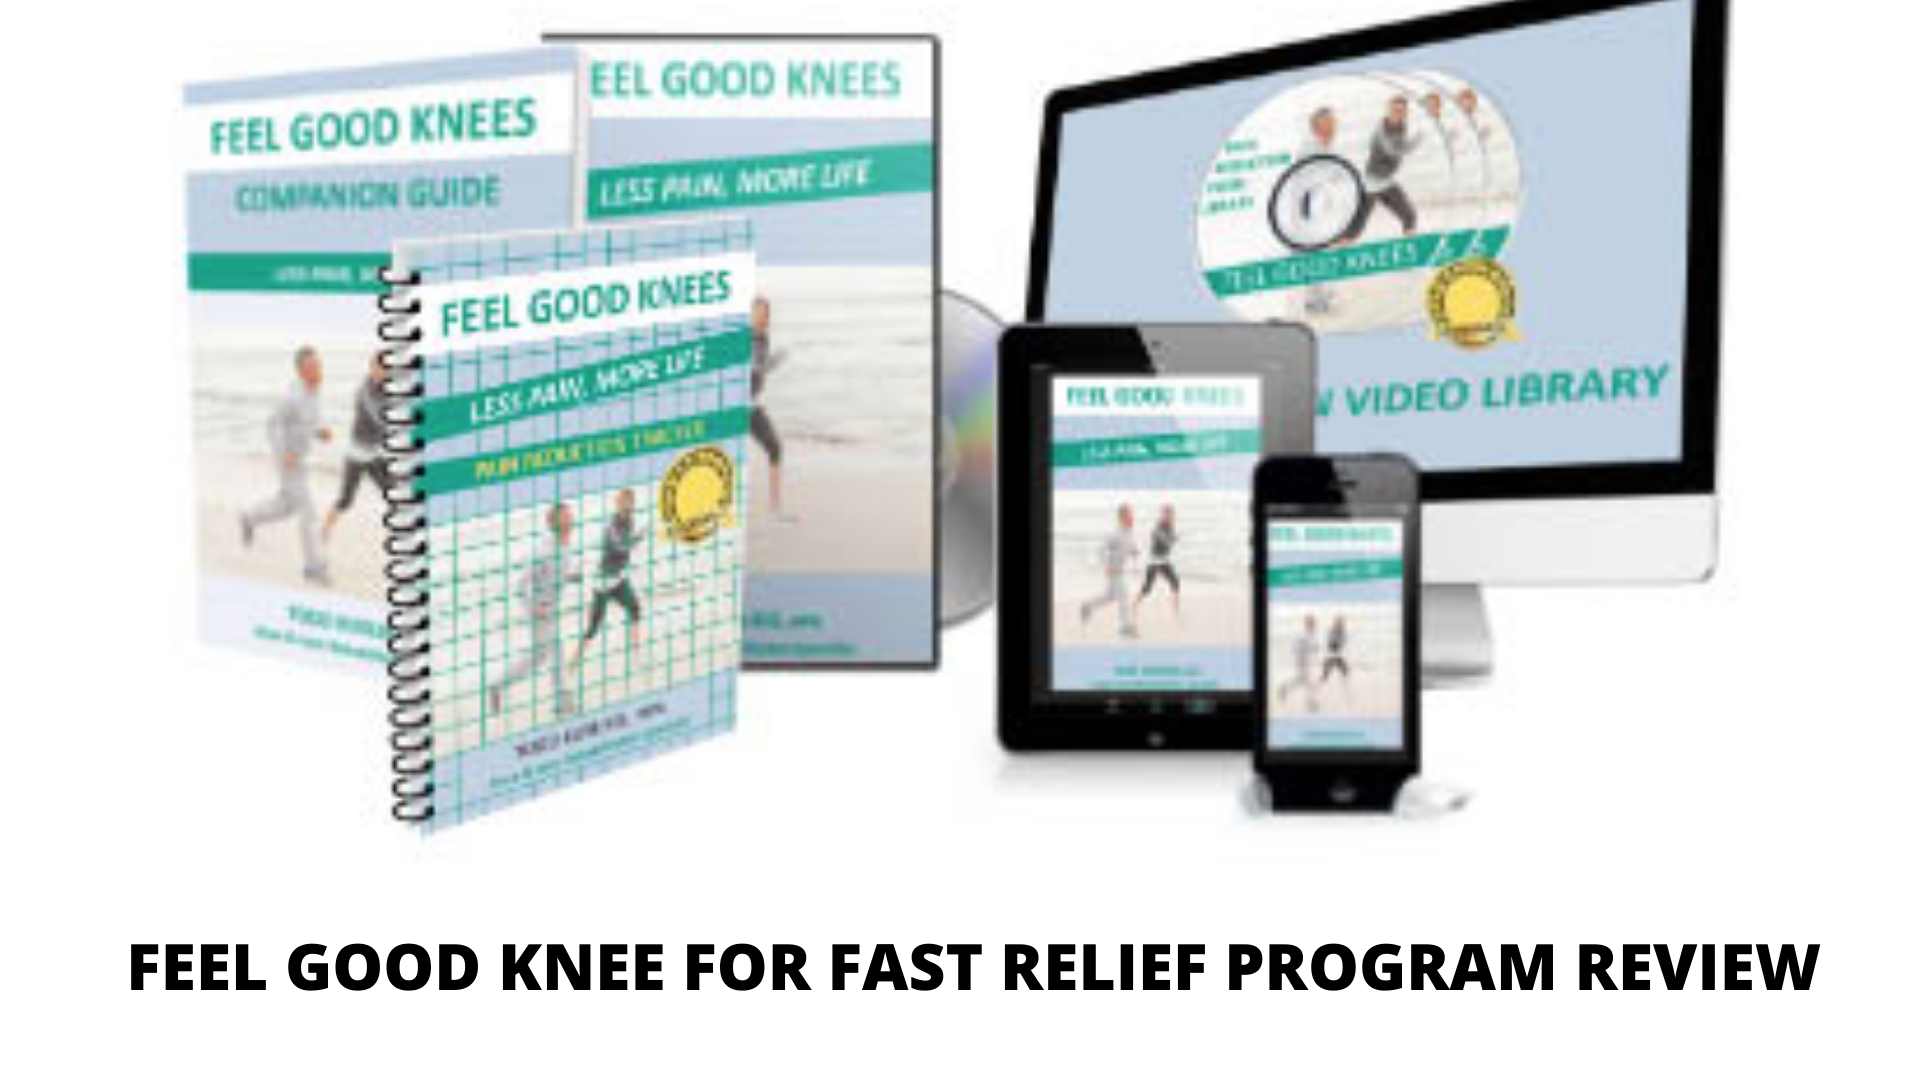 Feel good knees for fast pain relief review-My unbiased truth